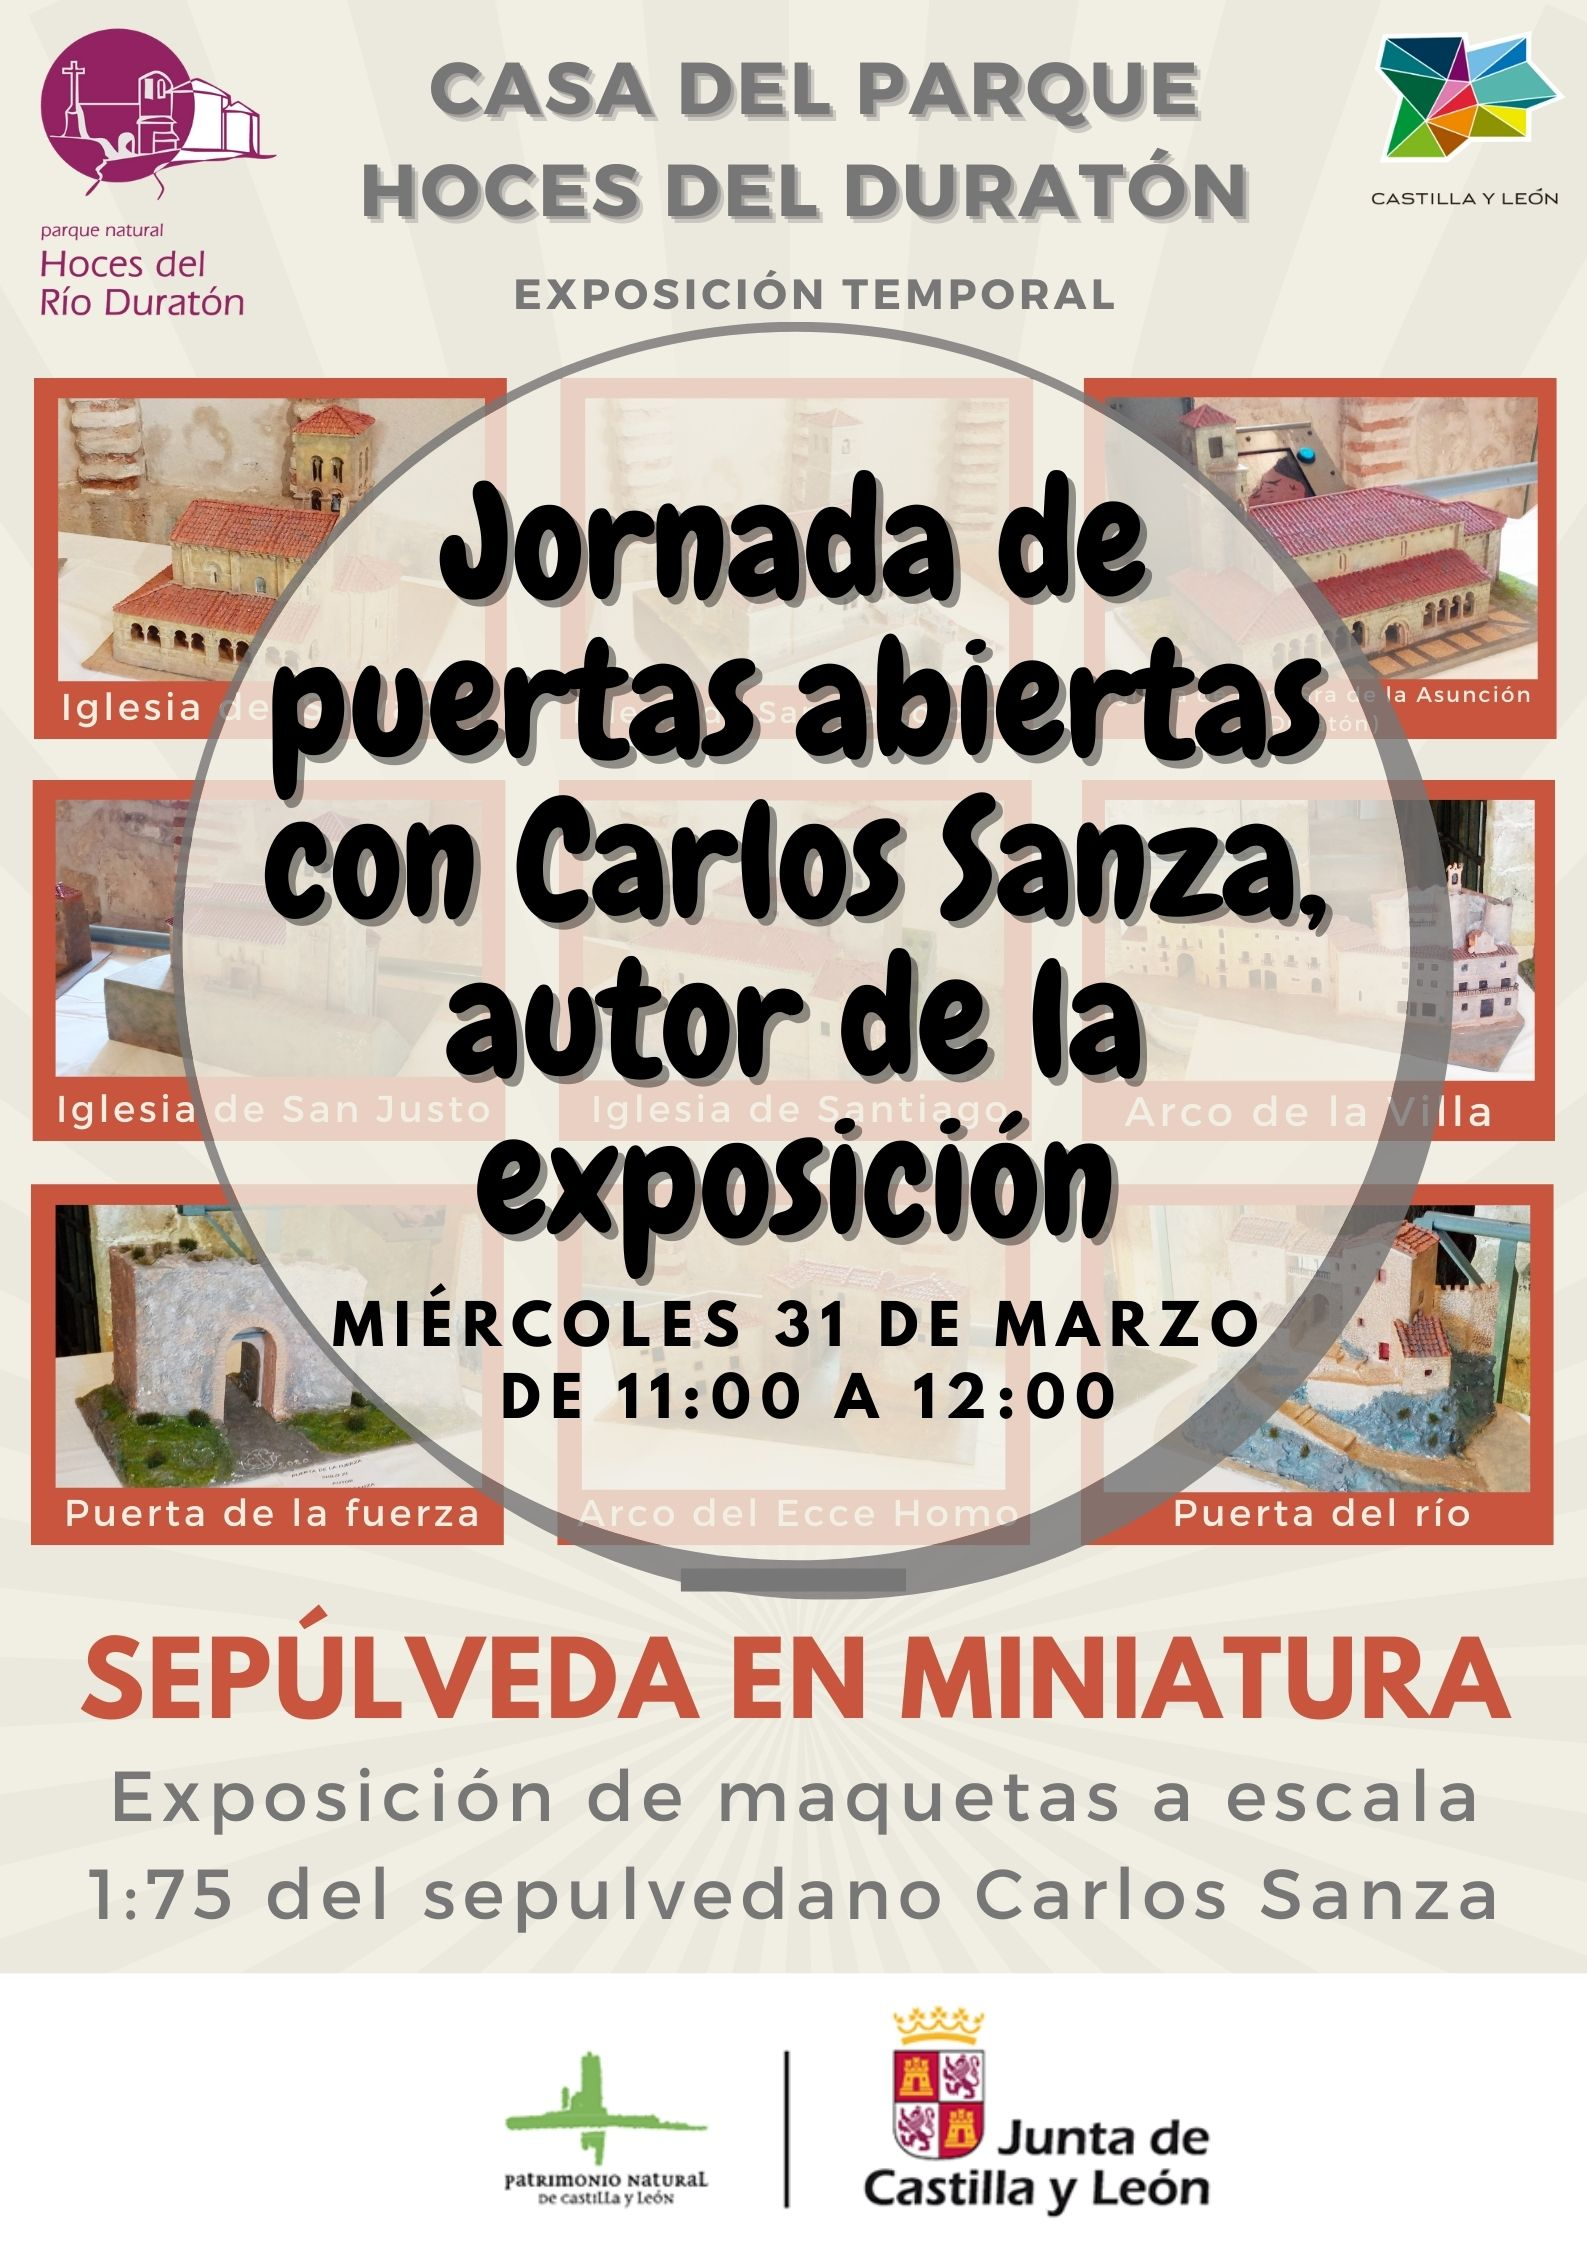 door_open_Exhibition_Sepúlveda_in_miniature_of_Carlos_Sanza.jpg